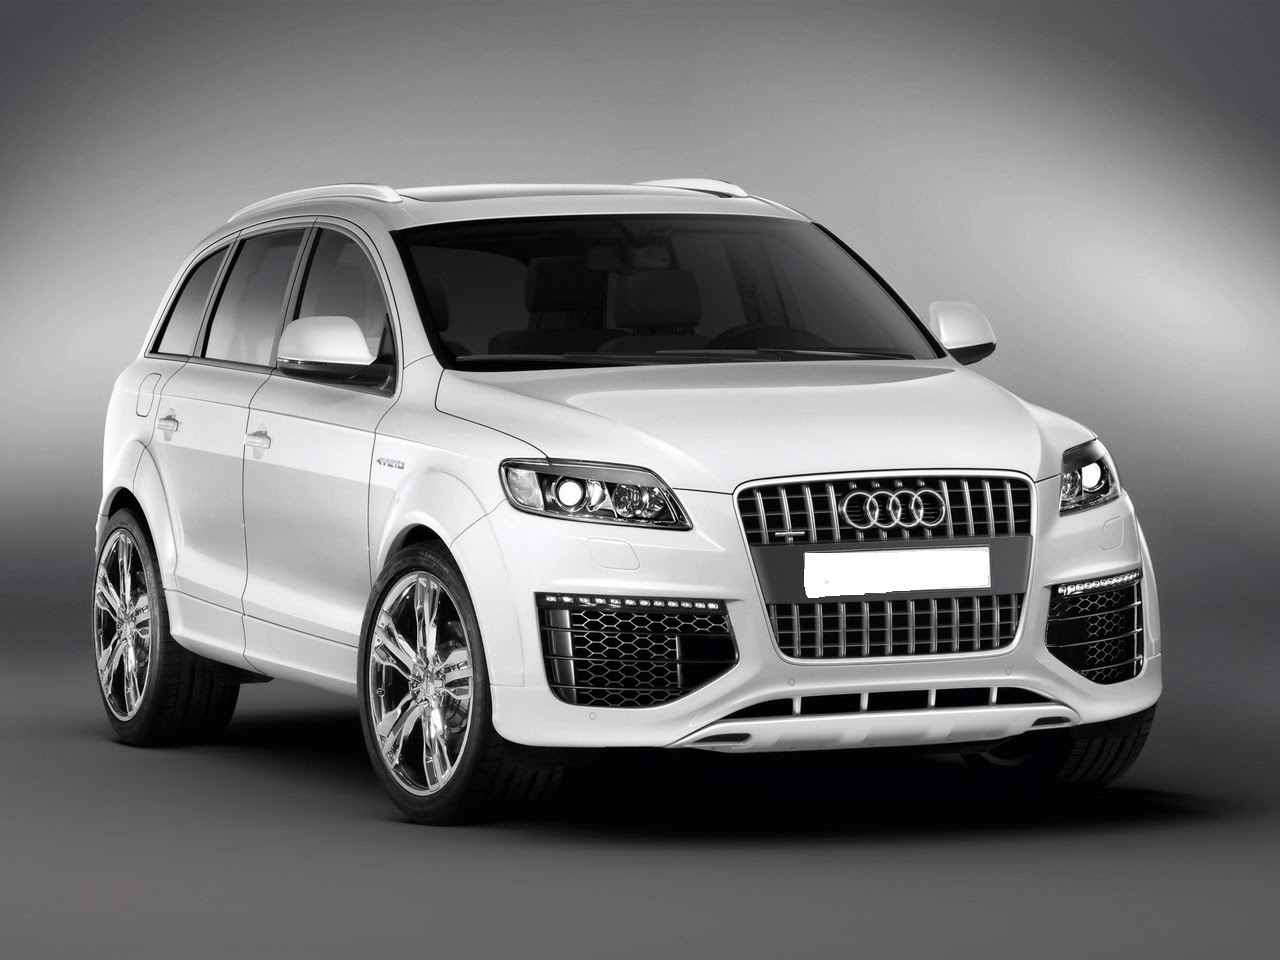 Servicerepairmanualspdf  Audi Q7 2009 Repair Manual